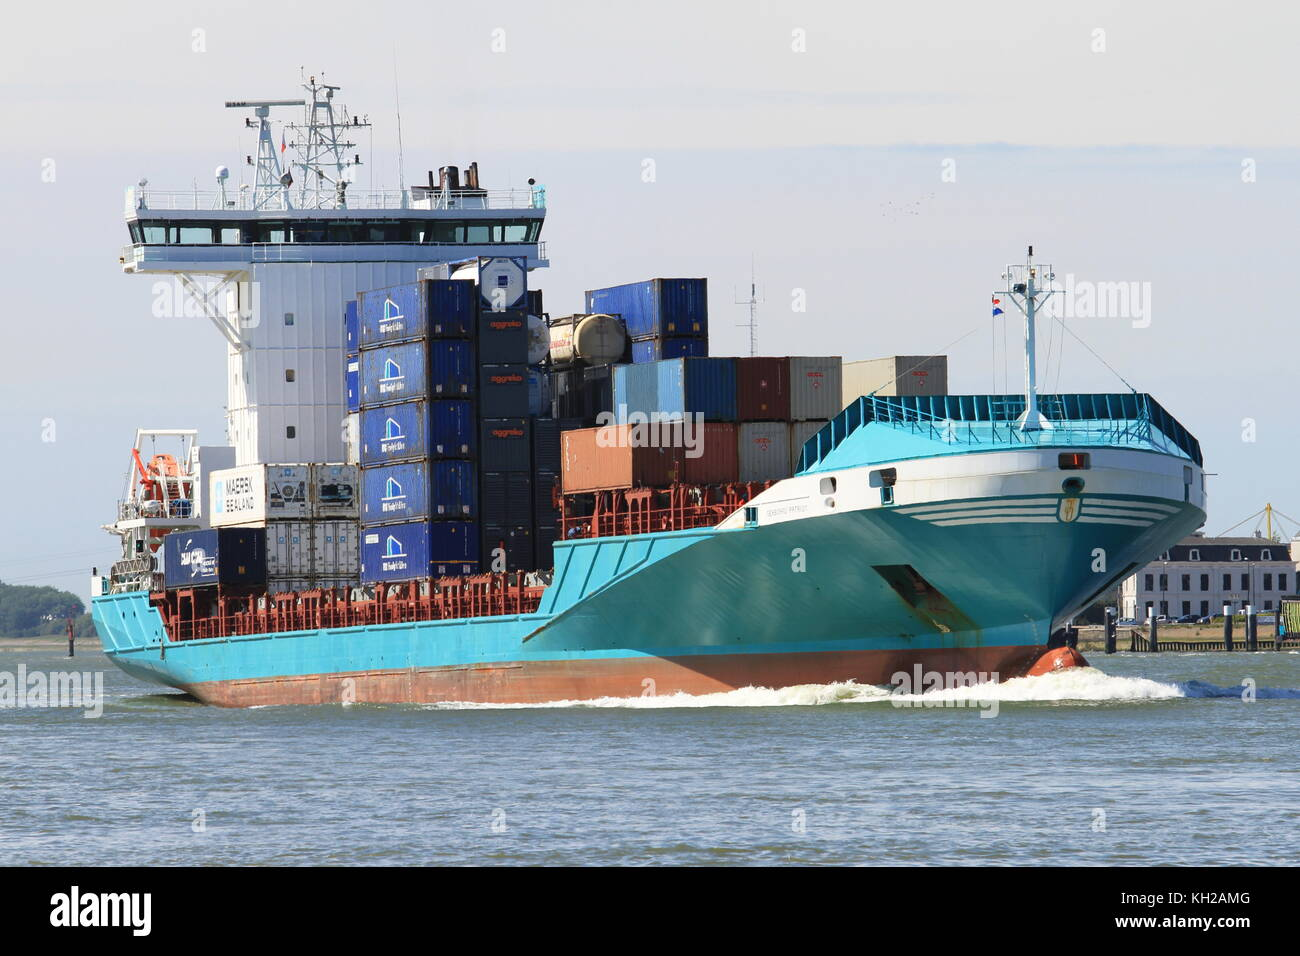 The container ship Seaboard Patriot will arrive at the port of Rotterdam on 24 May 2015. - Stock Image